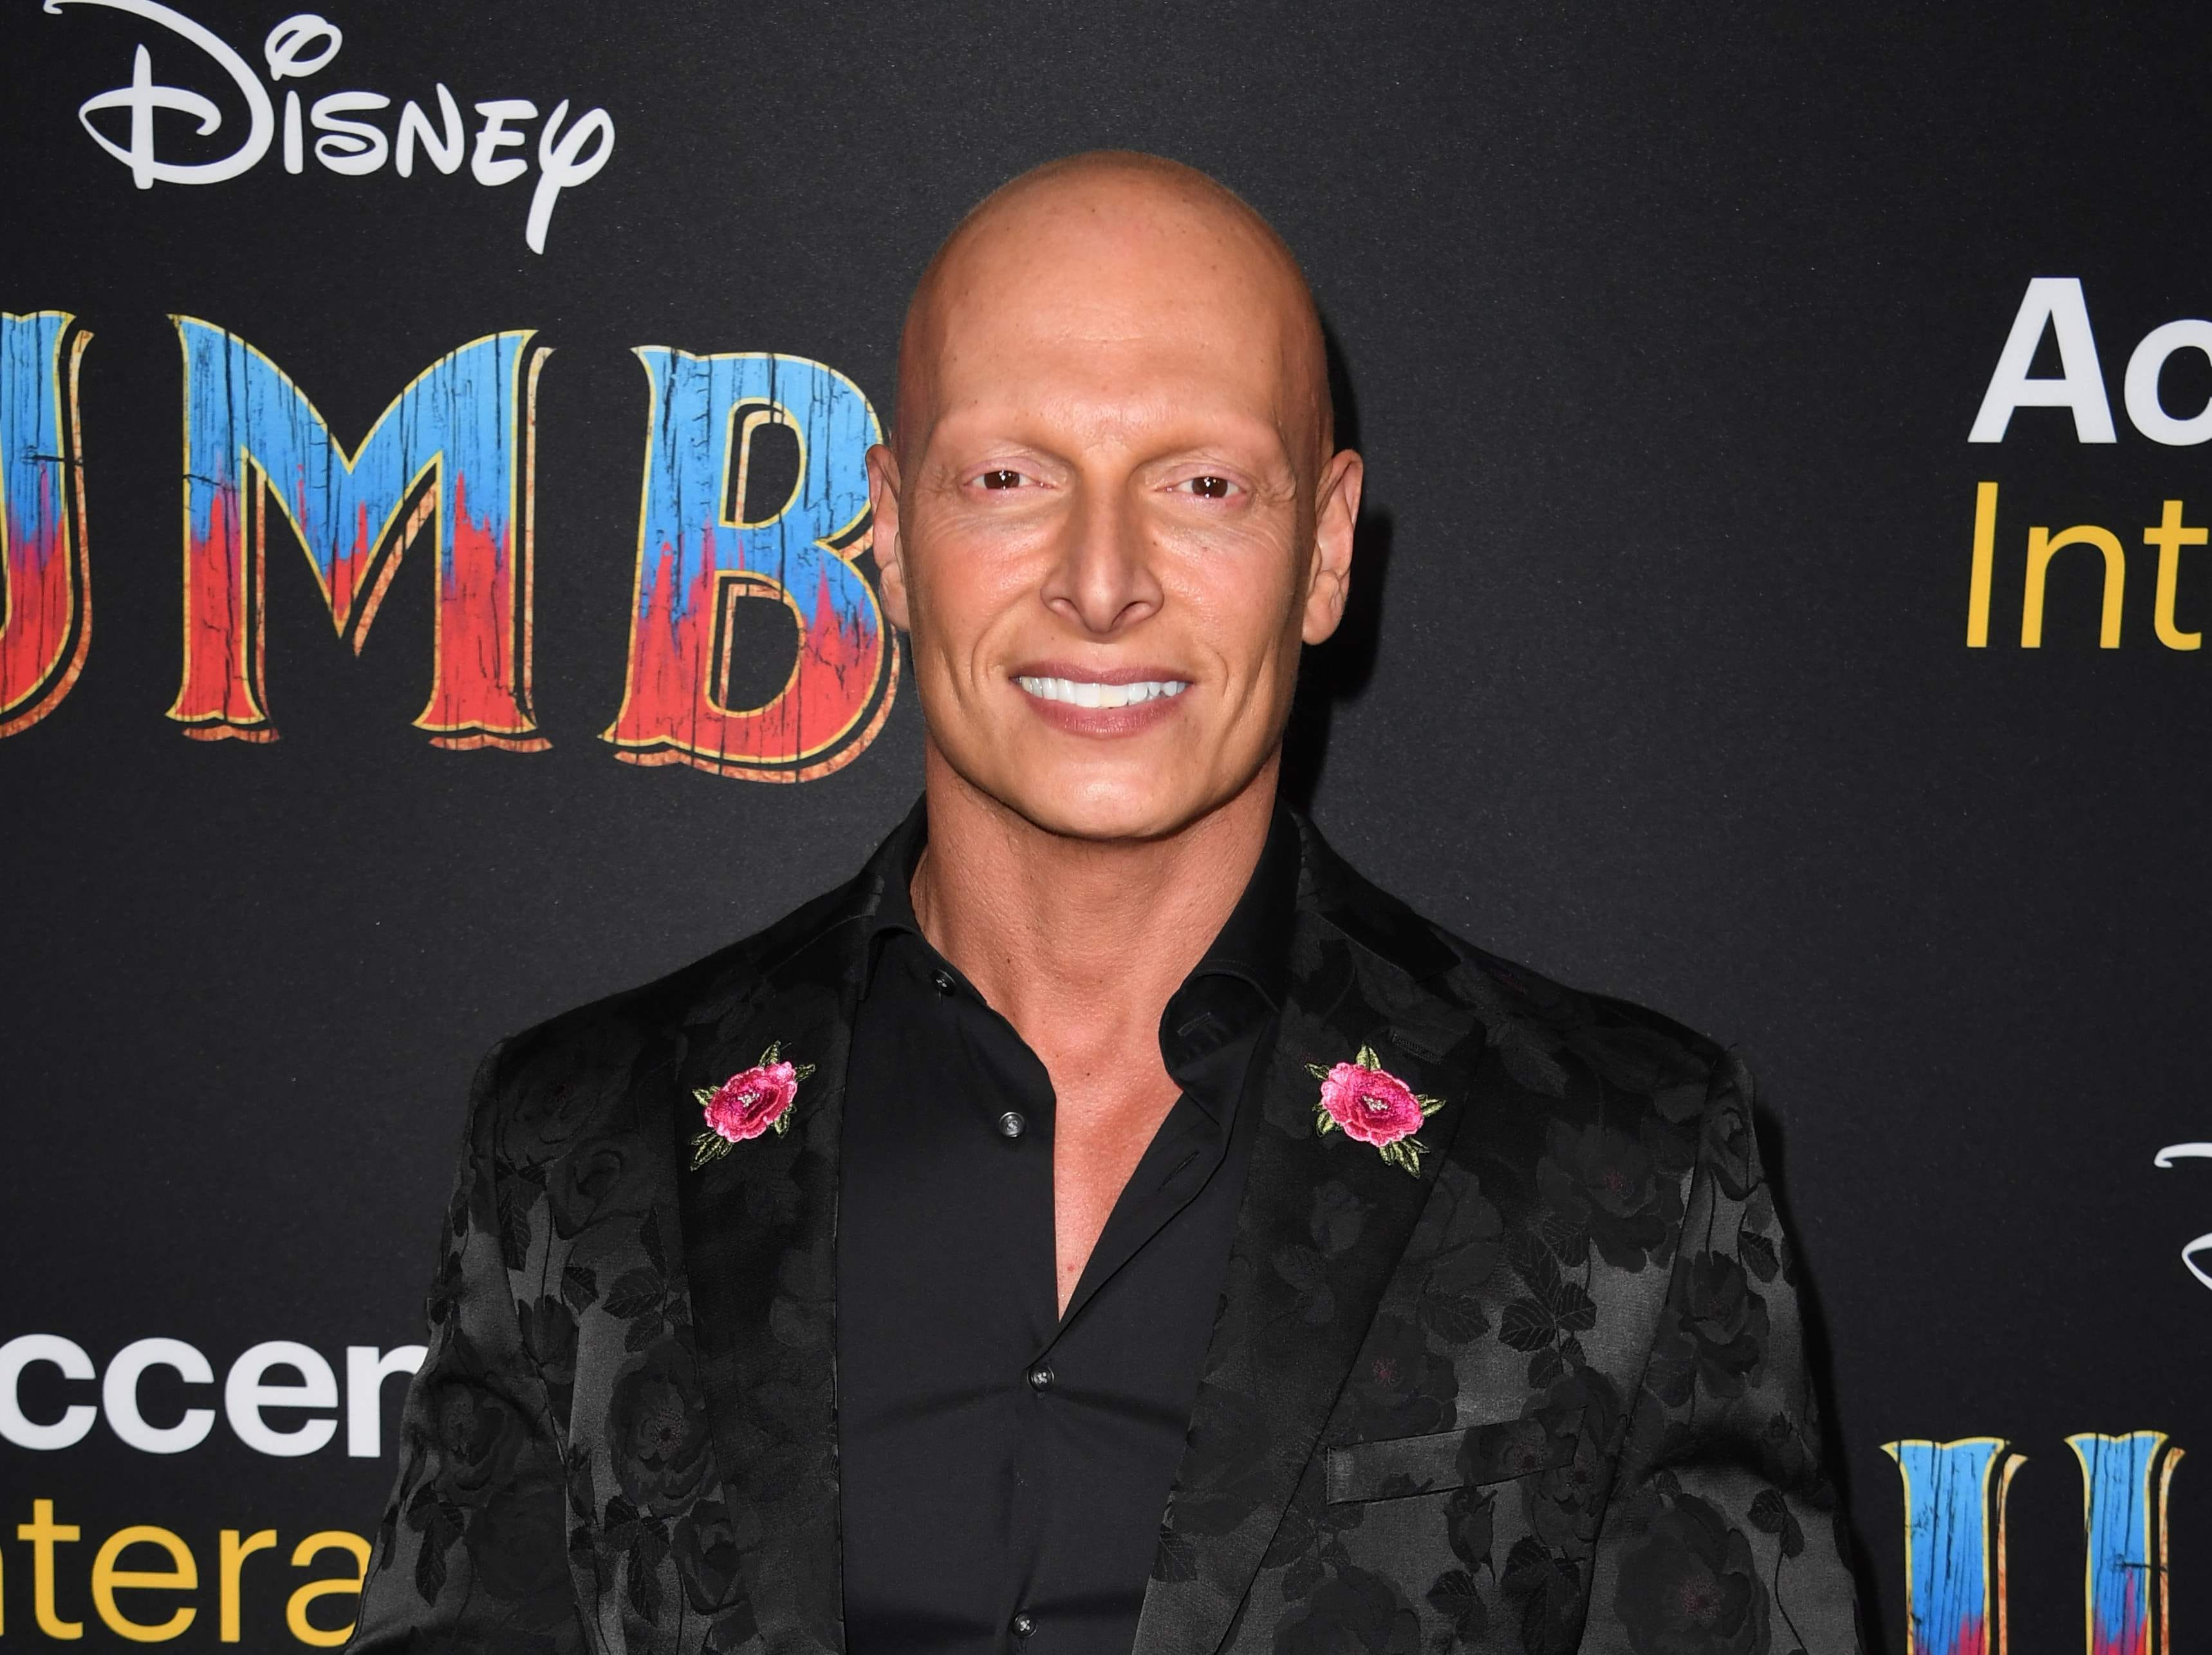 """British actor Joseph Gatt arrives for the world premiere of Disney's """"Dumbo"""" at El Capitan theatre on March 11, 2019 in Hollywood. (Photo by Robyn Beck / AFP)ROBYN BECK/AFP/Getty Images ORG XMIT: Premiere ORIG FILE ID: AFP_1EI144"""